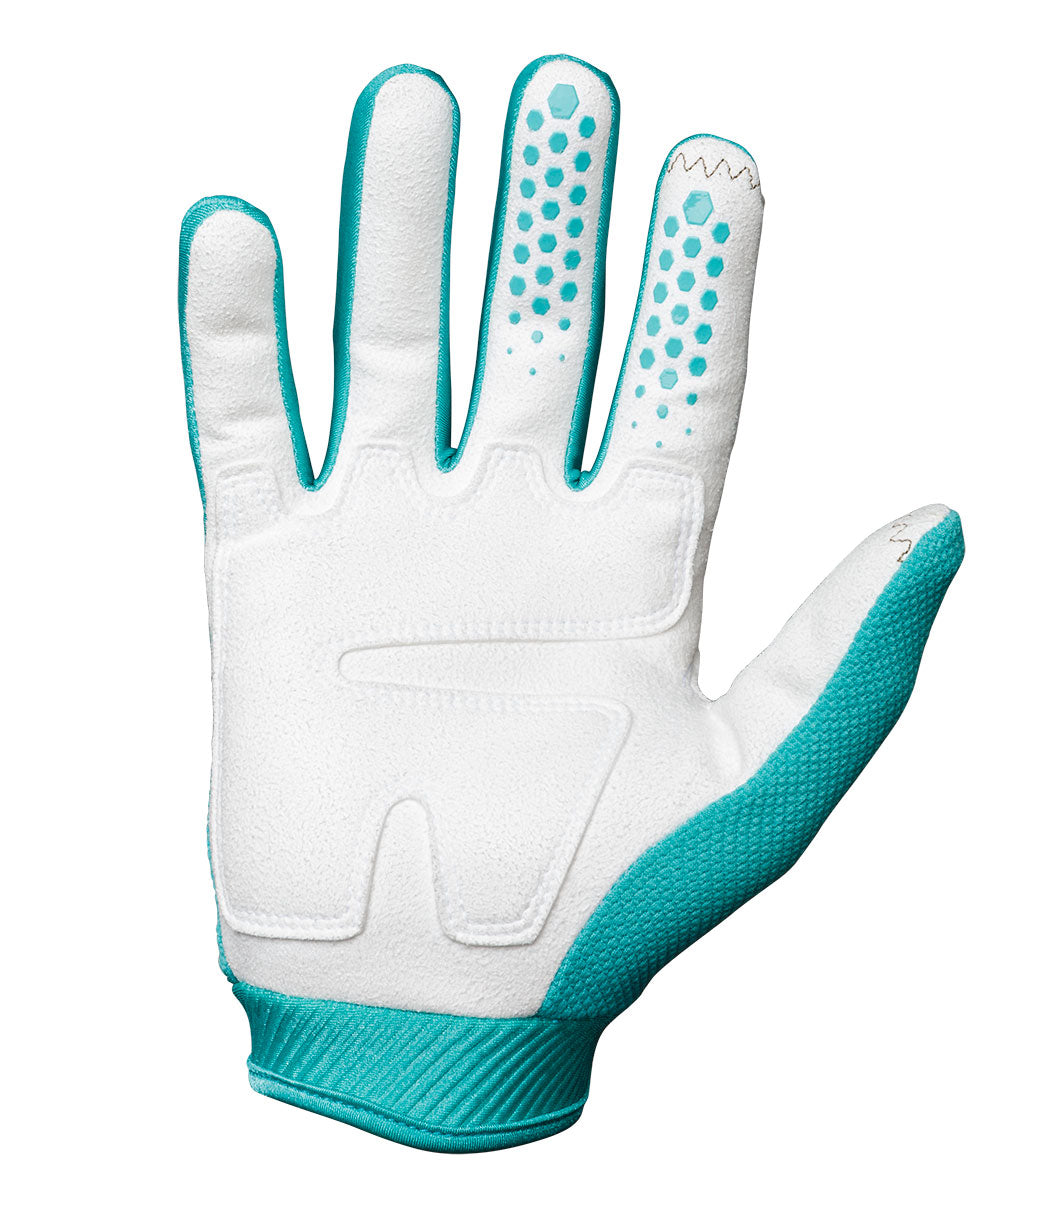 Rival Gloves - Aqua Lite